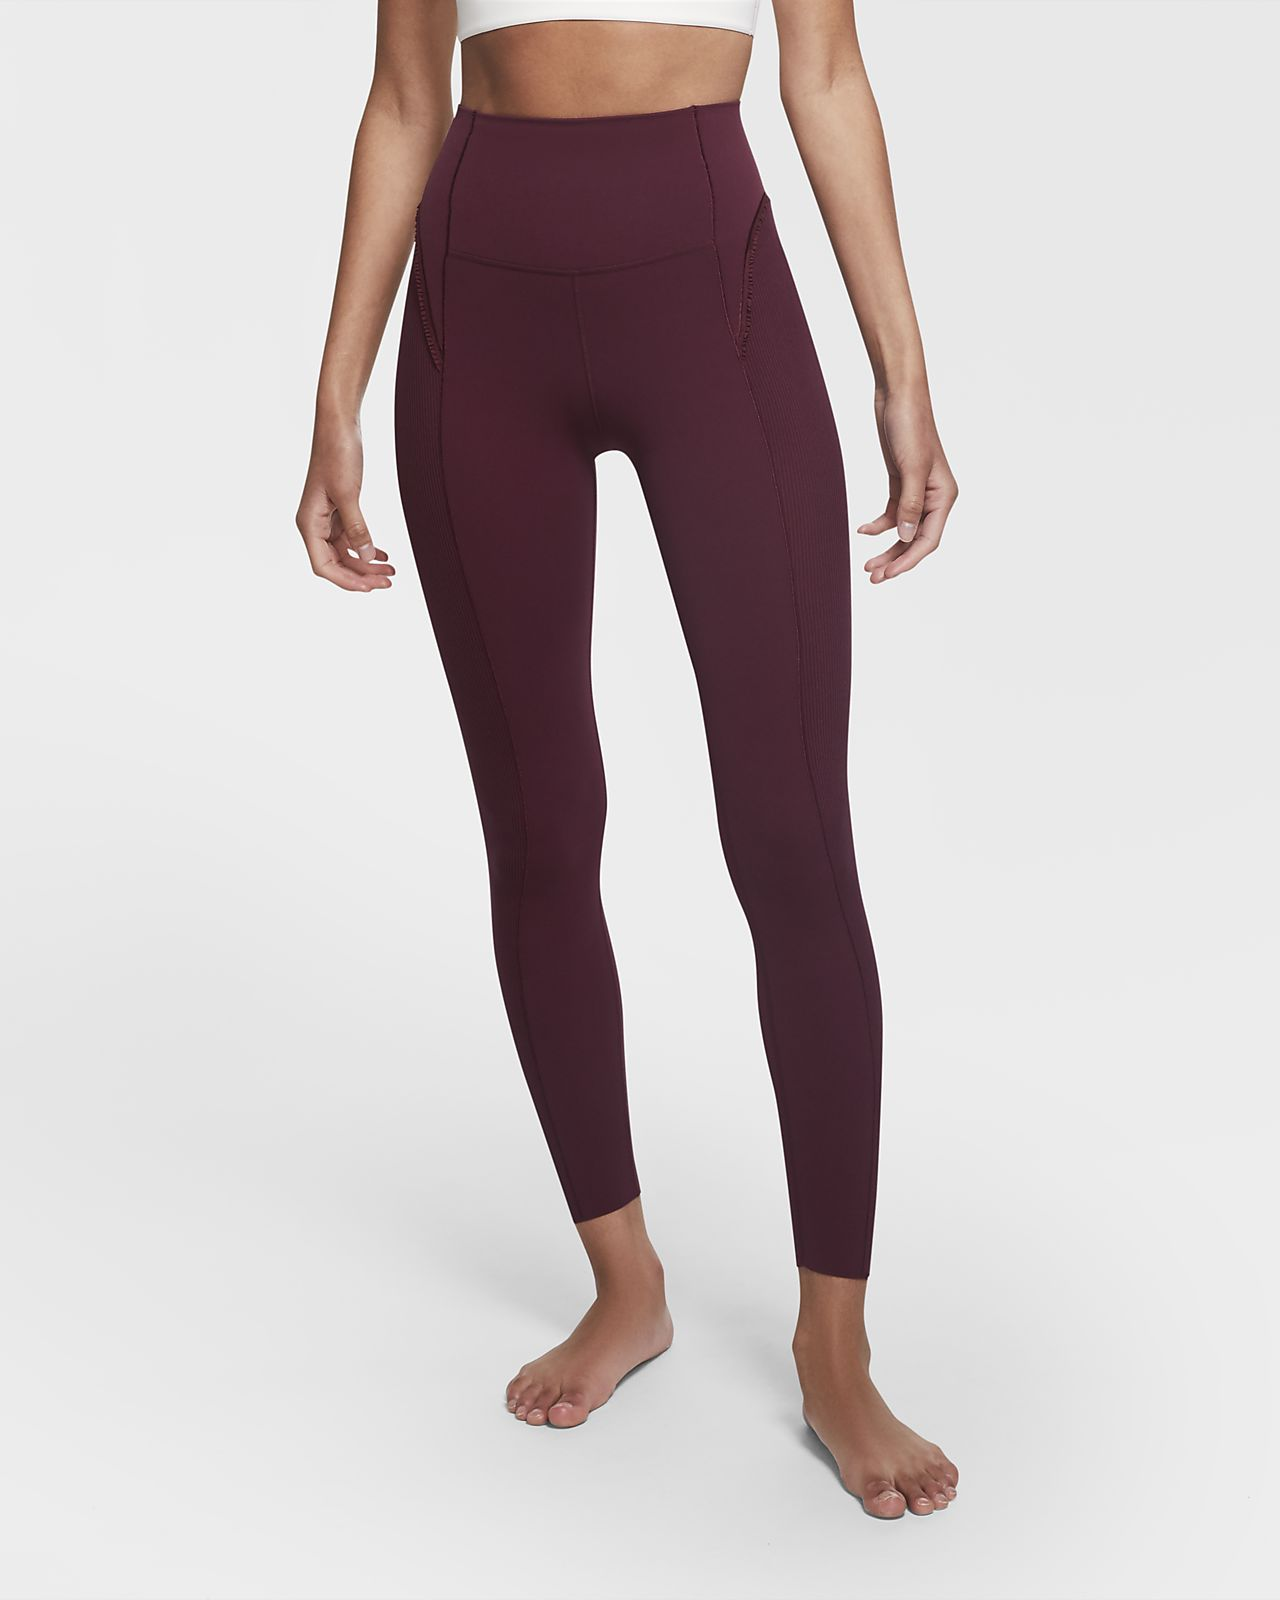 Nike Yoga Luxe Women's Infinalon Ruffled 7/8 Leggings